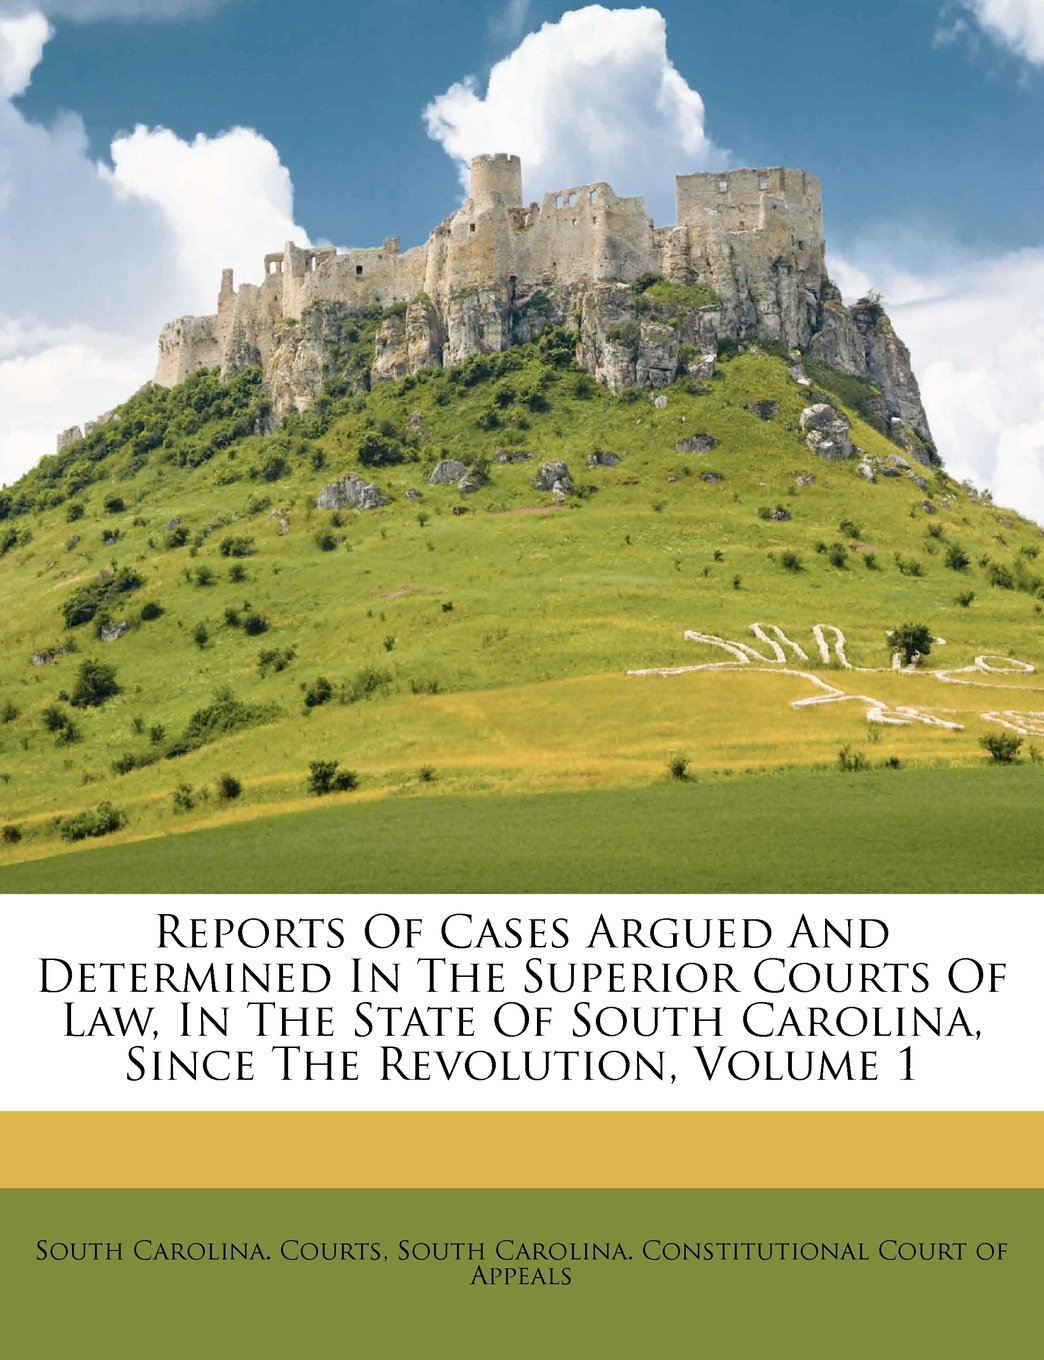 Download Reports Of Cases Argued And Determined In The Superior Courts Of Law, In The State Of South Carolina, Since The Revolution, Volume 1 ebook